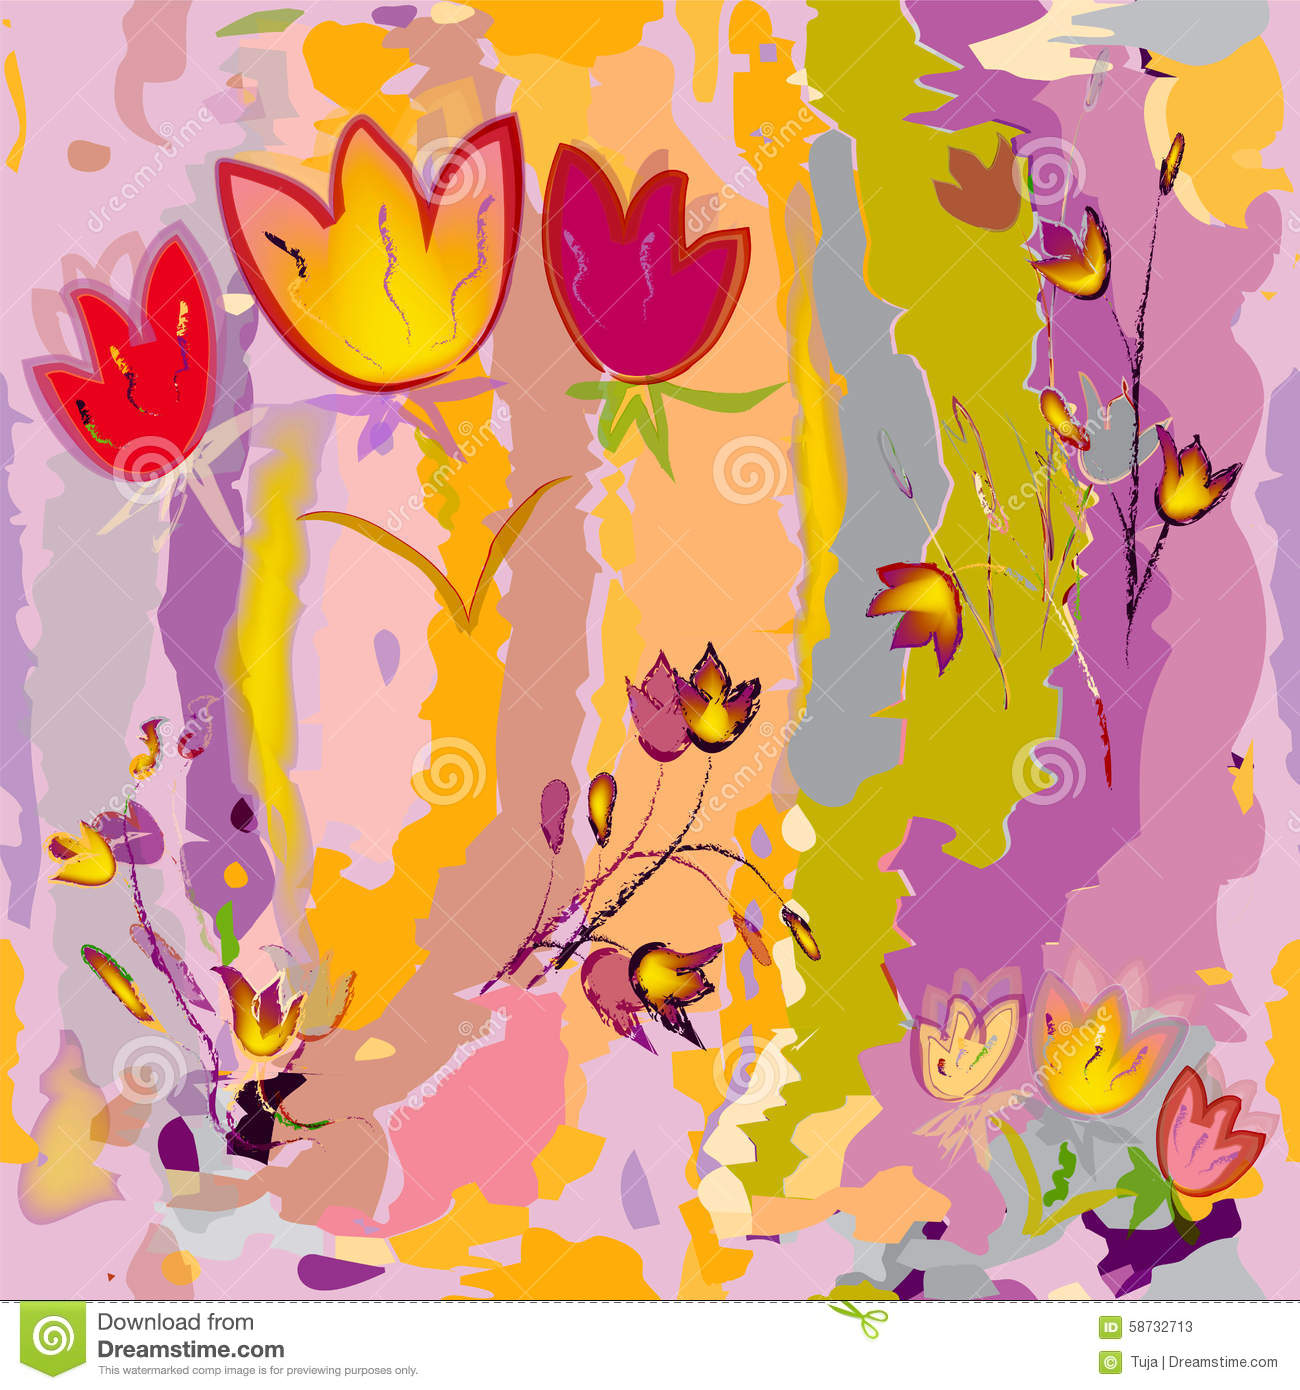 Sketching stylized tulips on colorful watercolor background